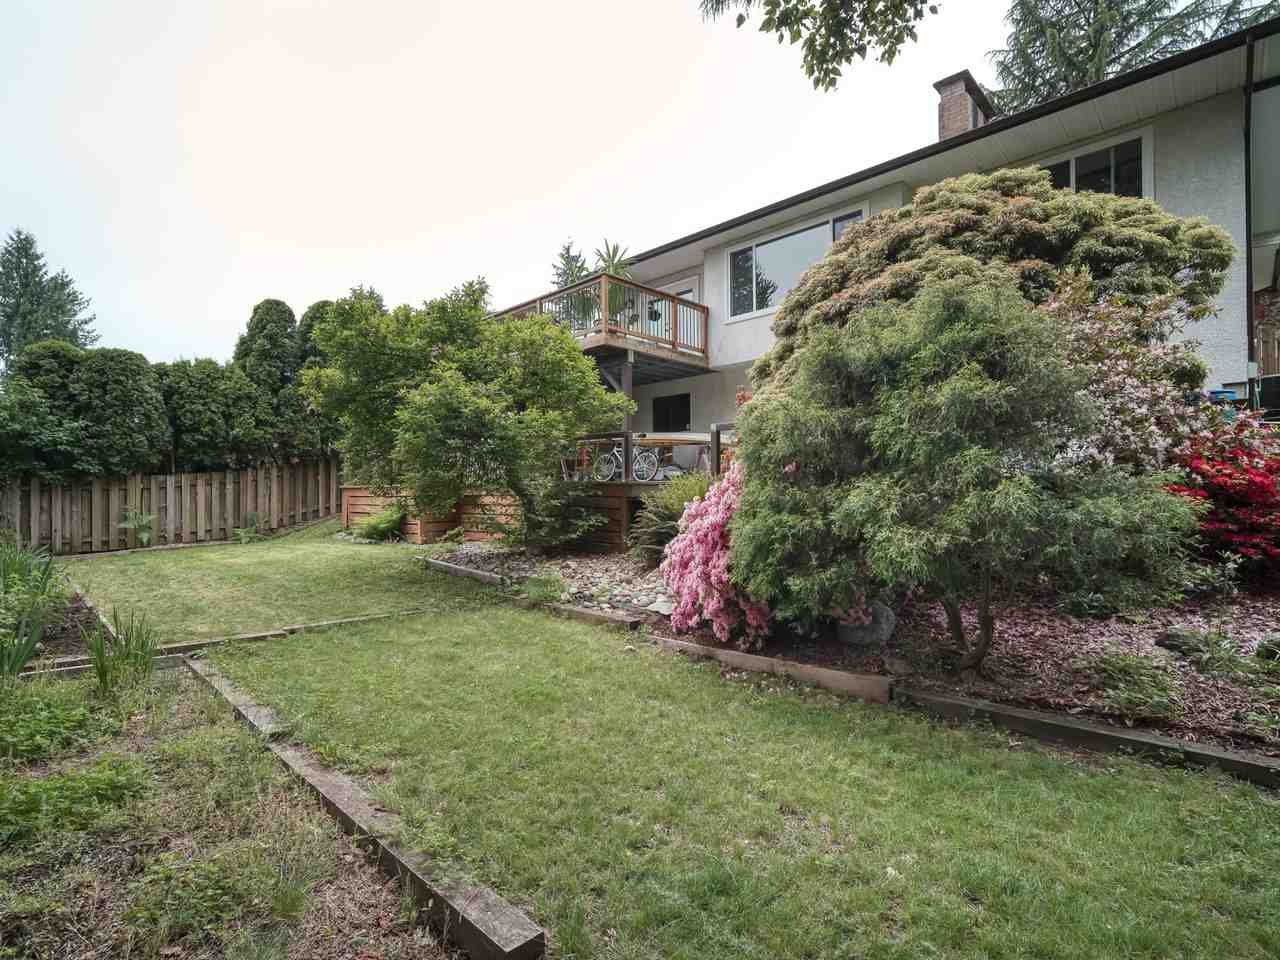 Photo 4: Photos: 2773 DAYBREAK Avenue in Coquitlam: Ranch Park House for sale : MLS®# R2457912